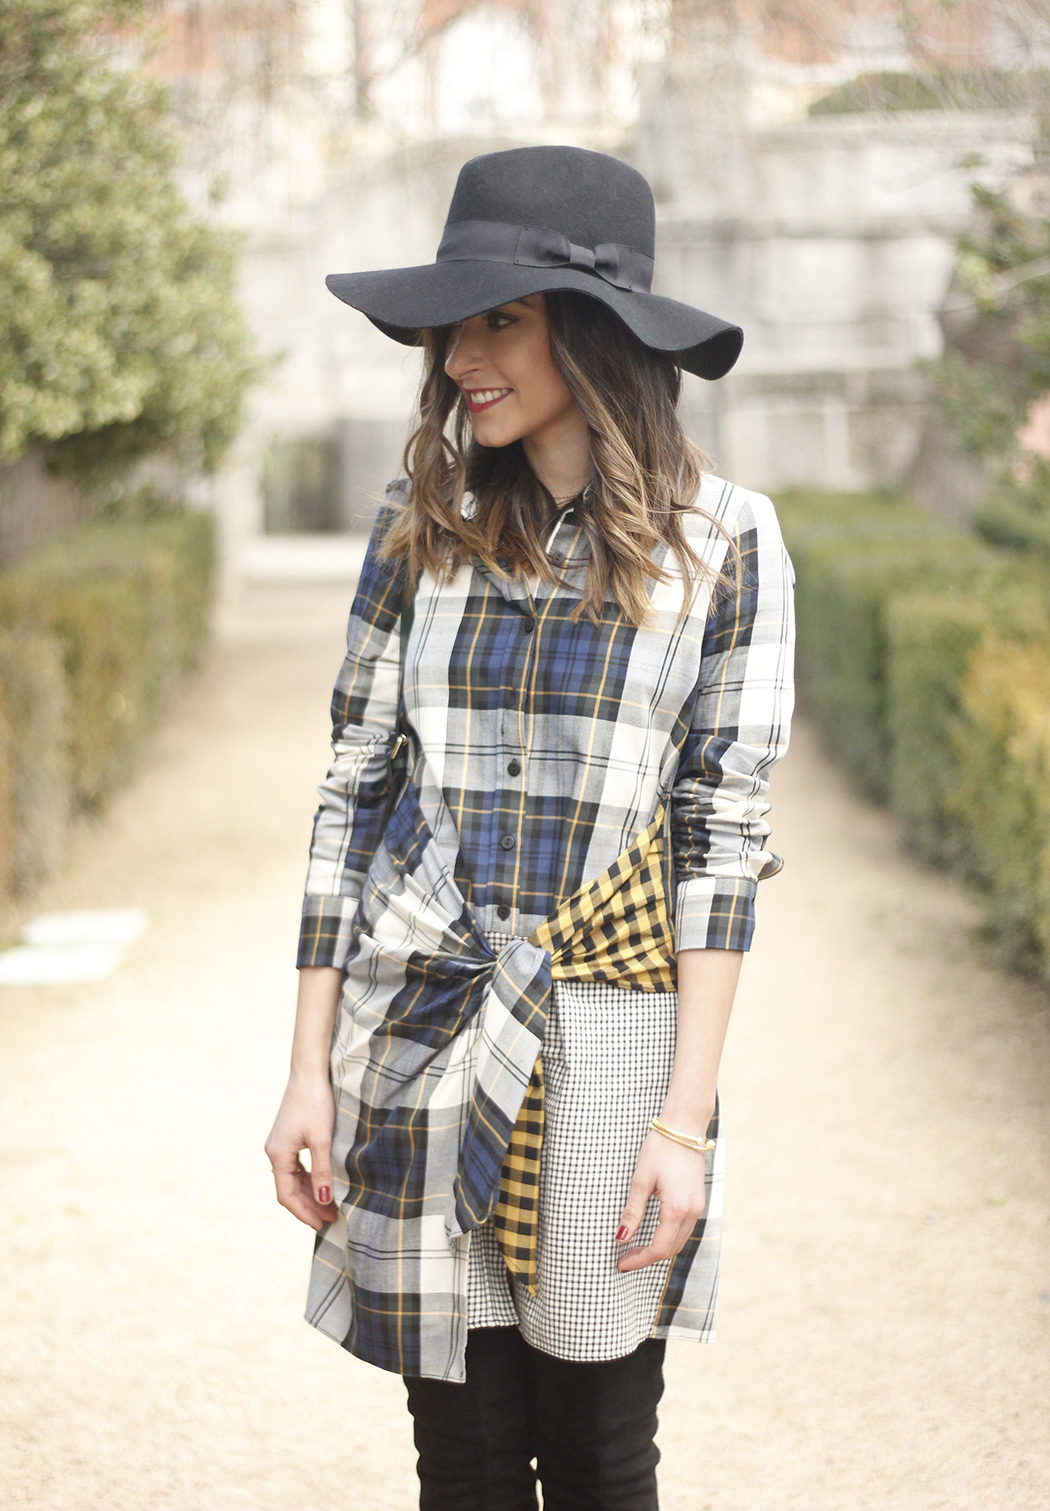 Tartan shirt dress zara over the knee boots mango hat green bag outfit fashion18